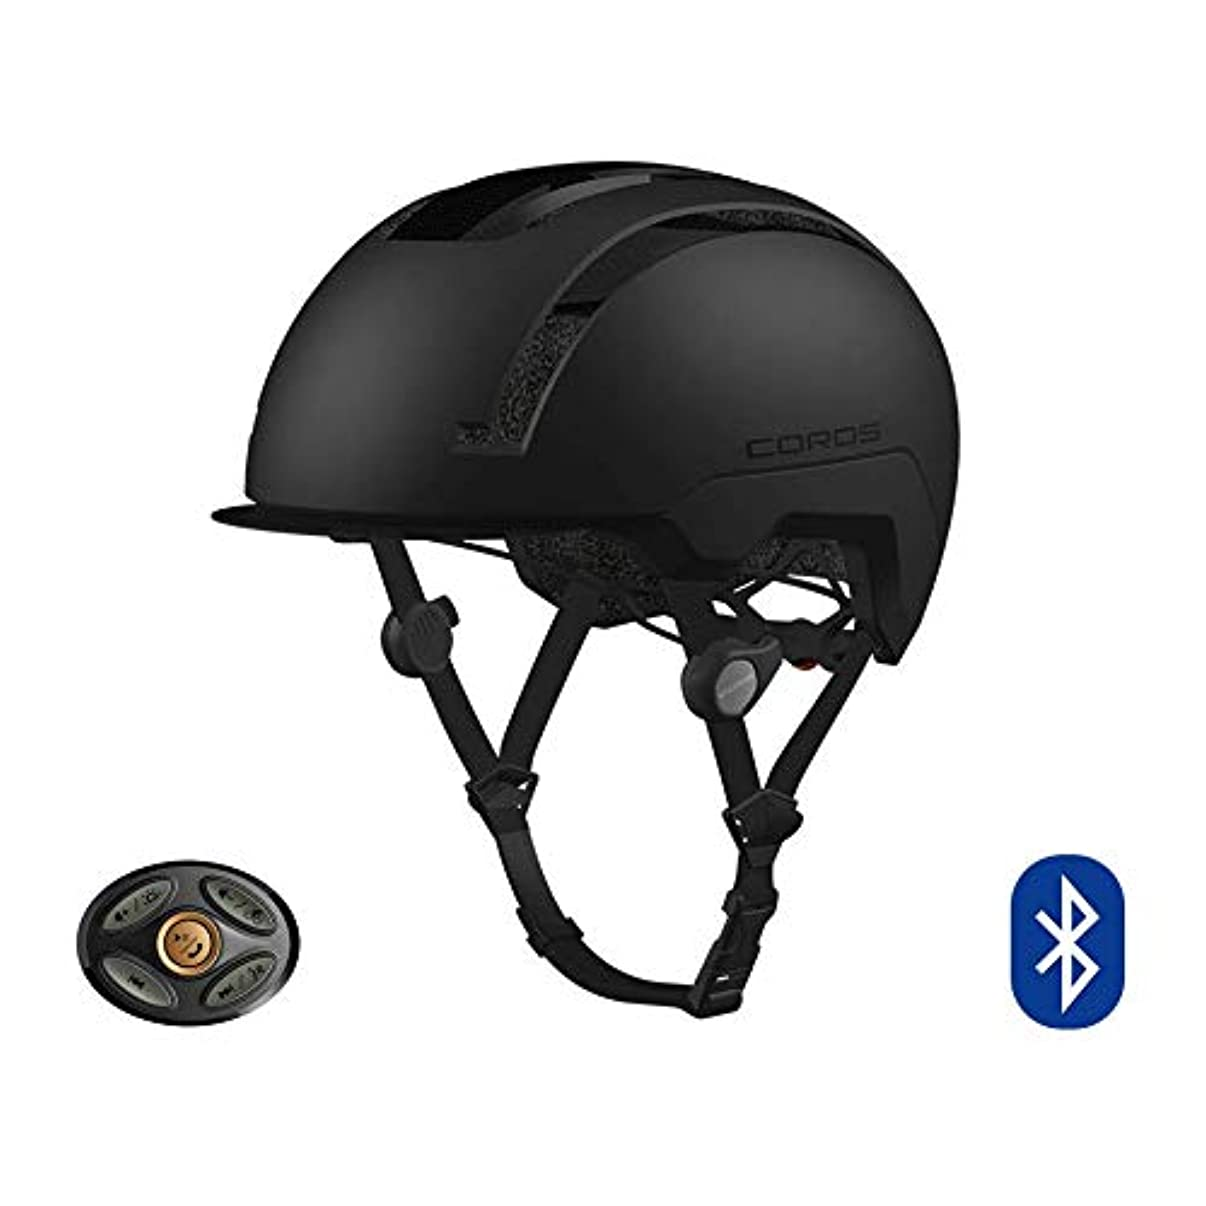 Coros SafeSound Urban Smart Cycling Helmet with Ear Opening Sound System, SOS Emergency Alert, and LED Tail Light   Bluetooth for Music and Phone Calls   Smart Remote   Lightweight